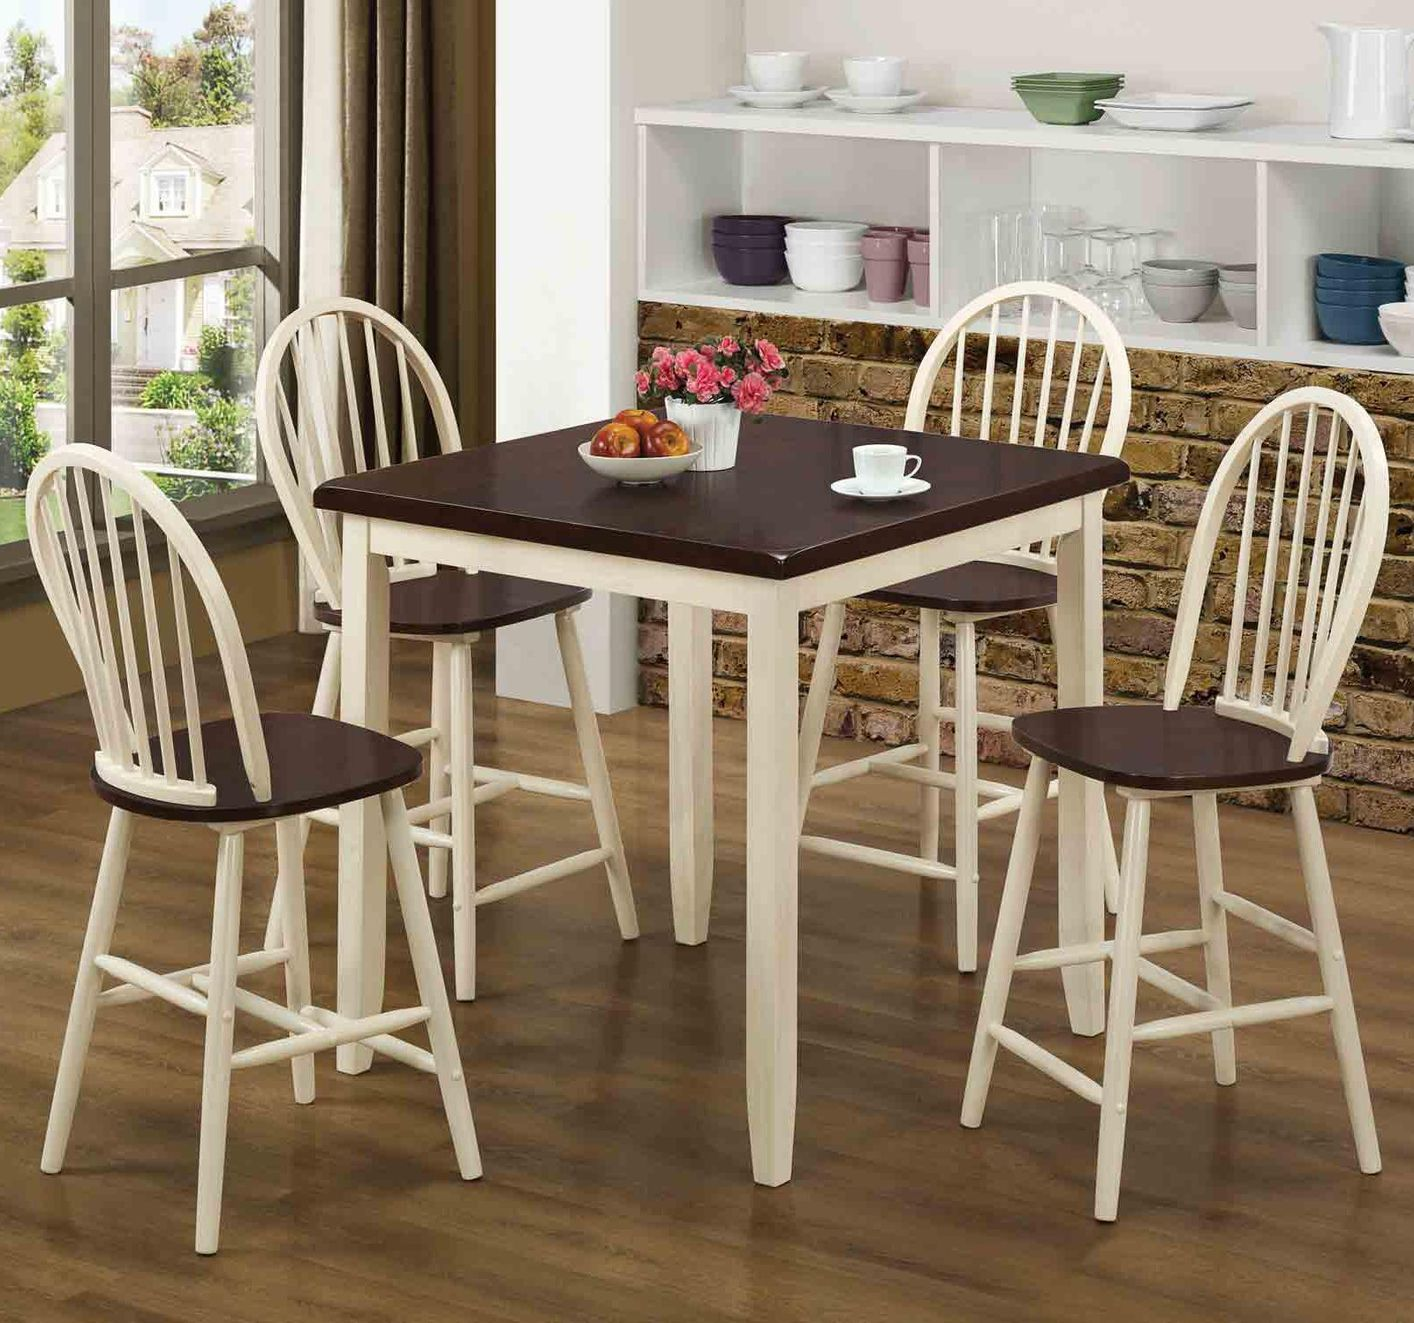 cherry wood table and chairs 3 in 1 potty chair hollis buttermilk pub set steal a